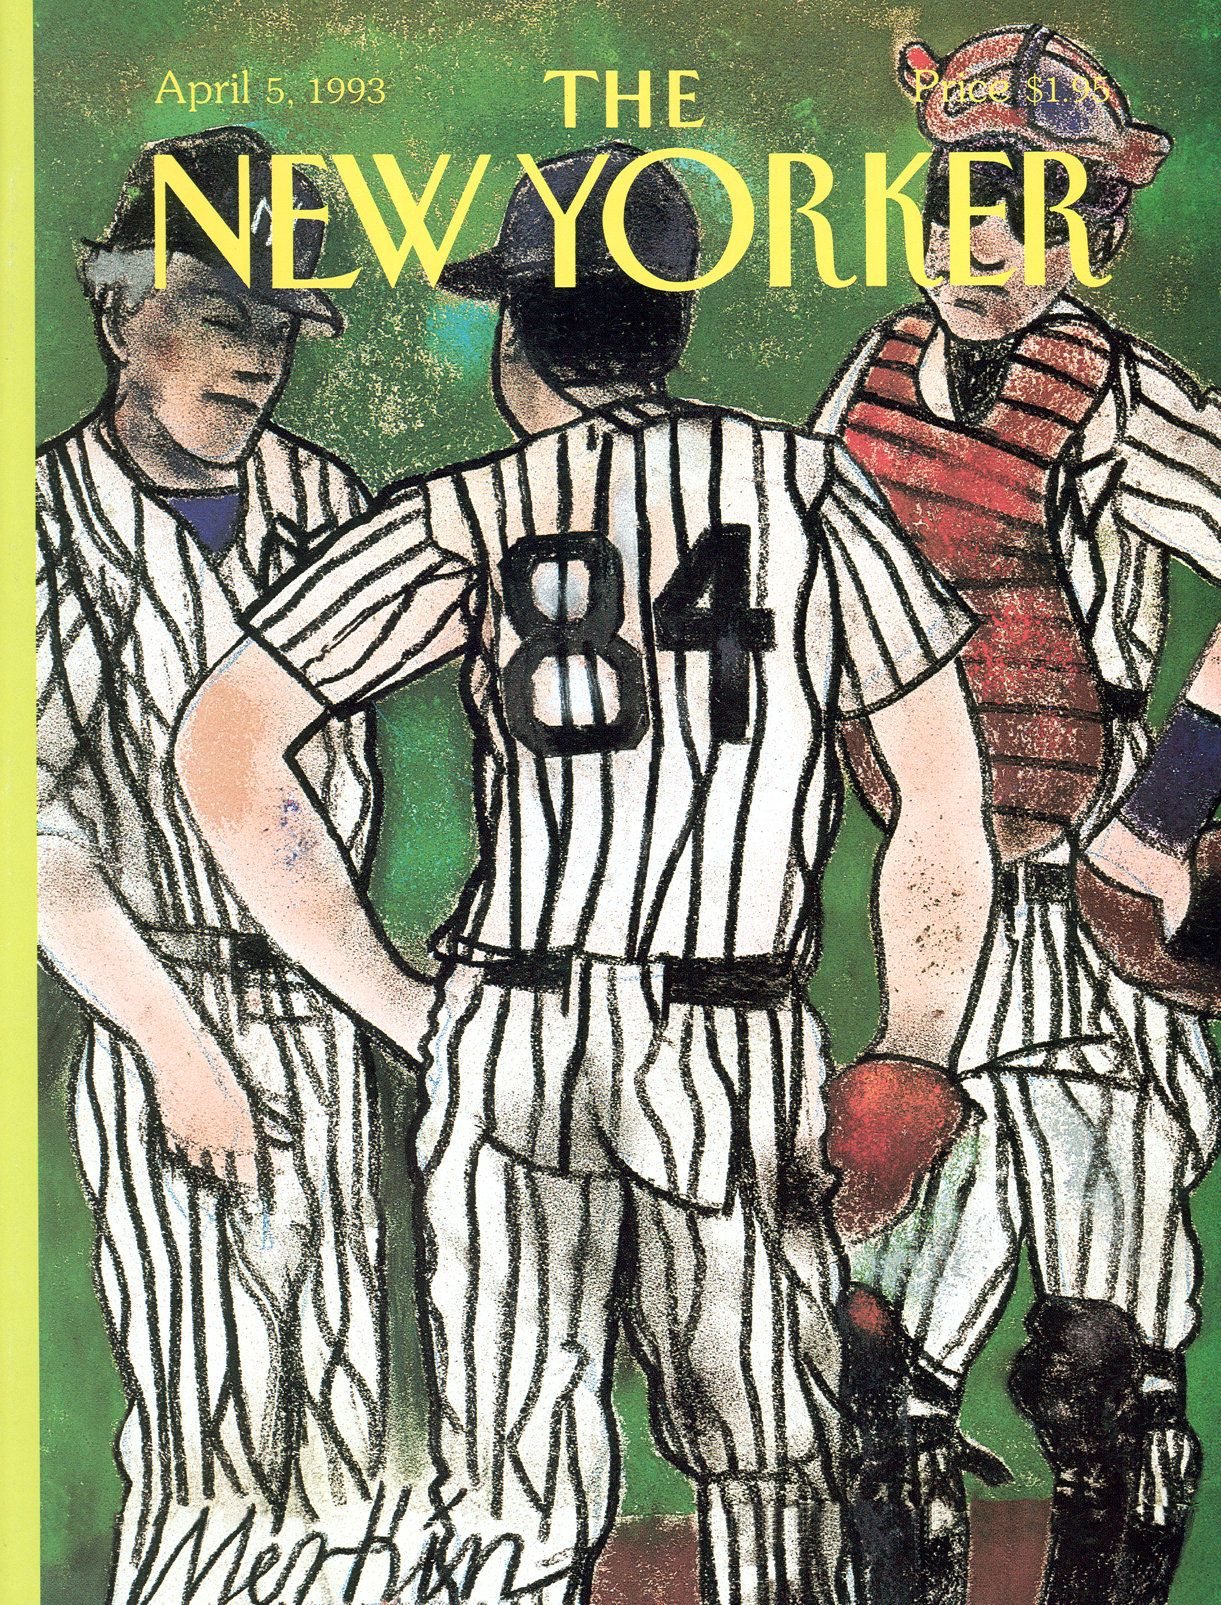 """The New Yorker - Monday, April 5, 1993 - Issue # 3554 - Vol. 69 - N° 7 - Cover """"The Changing of the Guard in the House That Ruth Built"""" by Richard Merkin"""